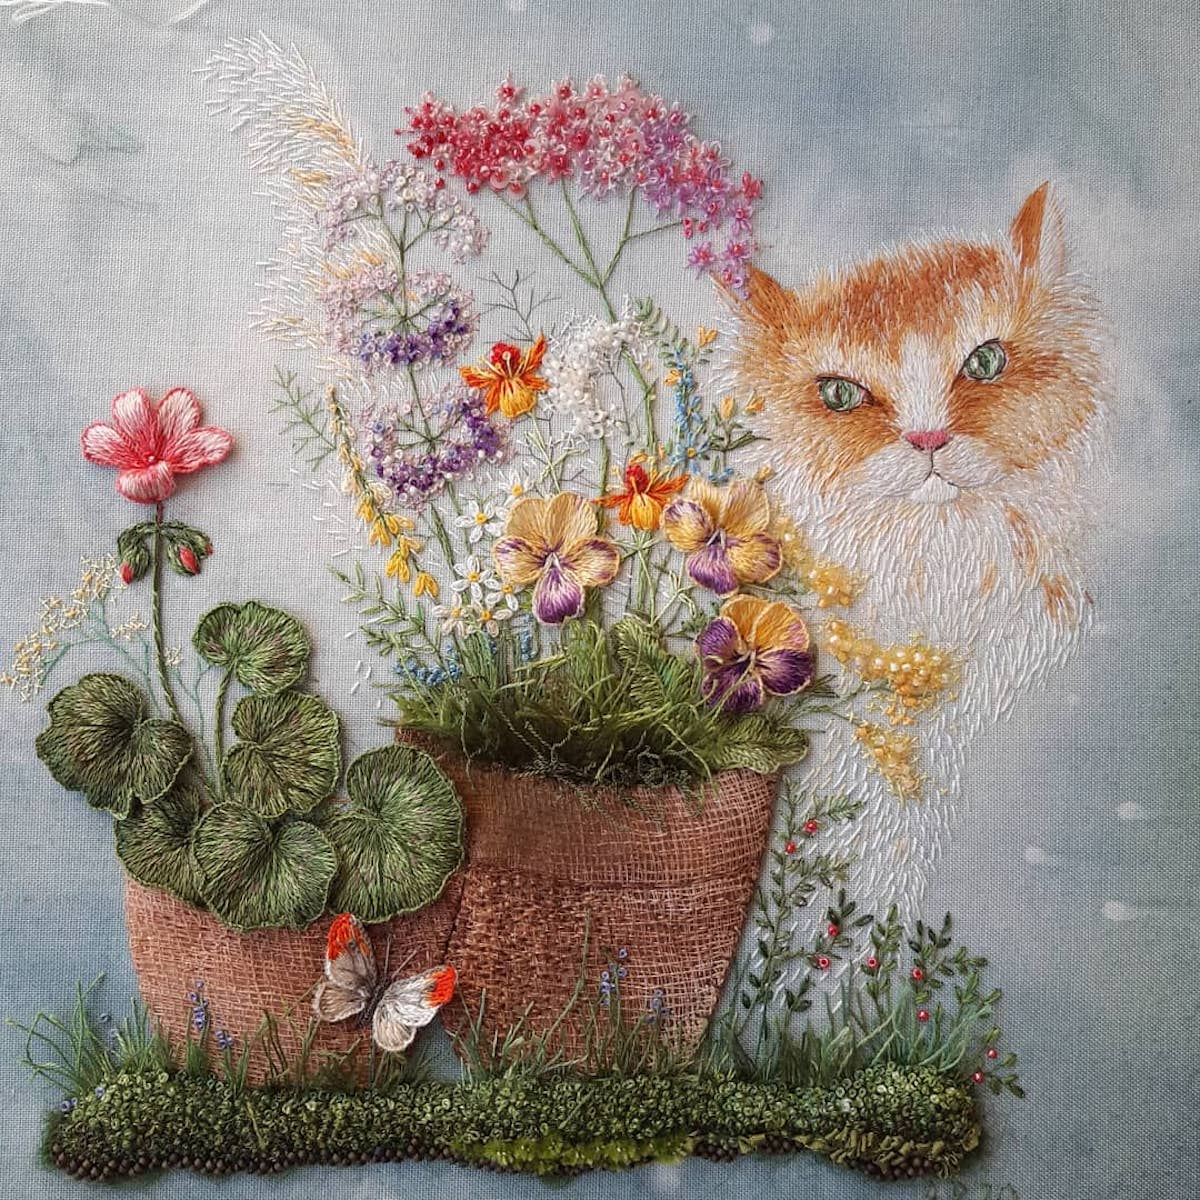 Rosa Andreeva Embroidered Garden With Snail